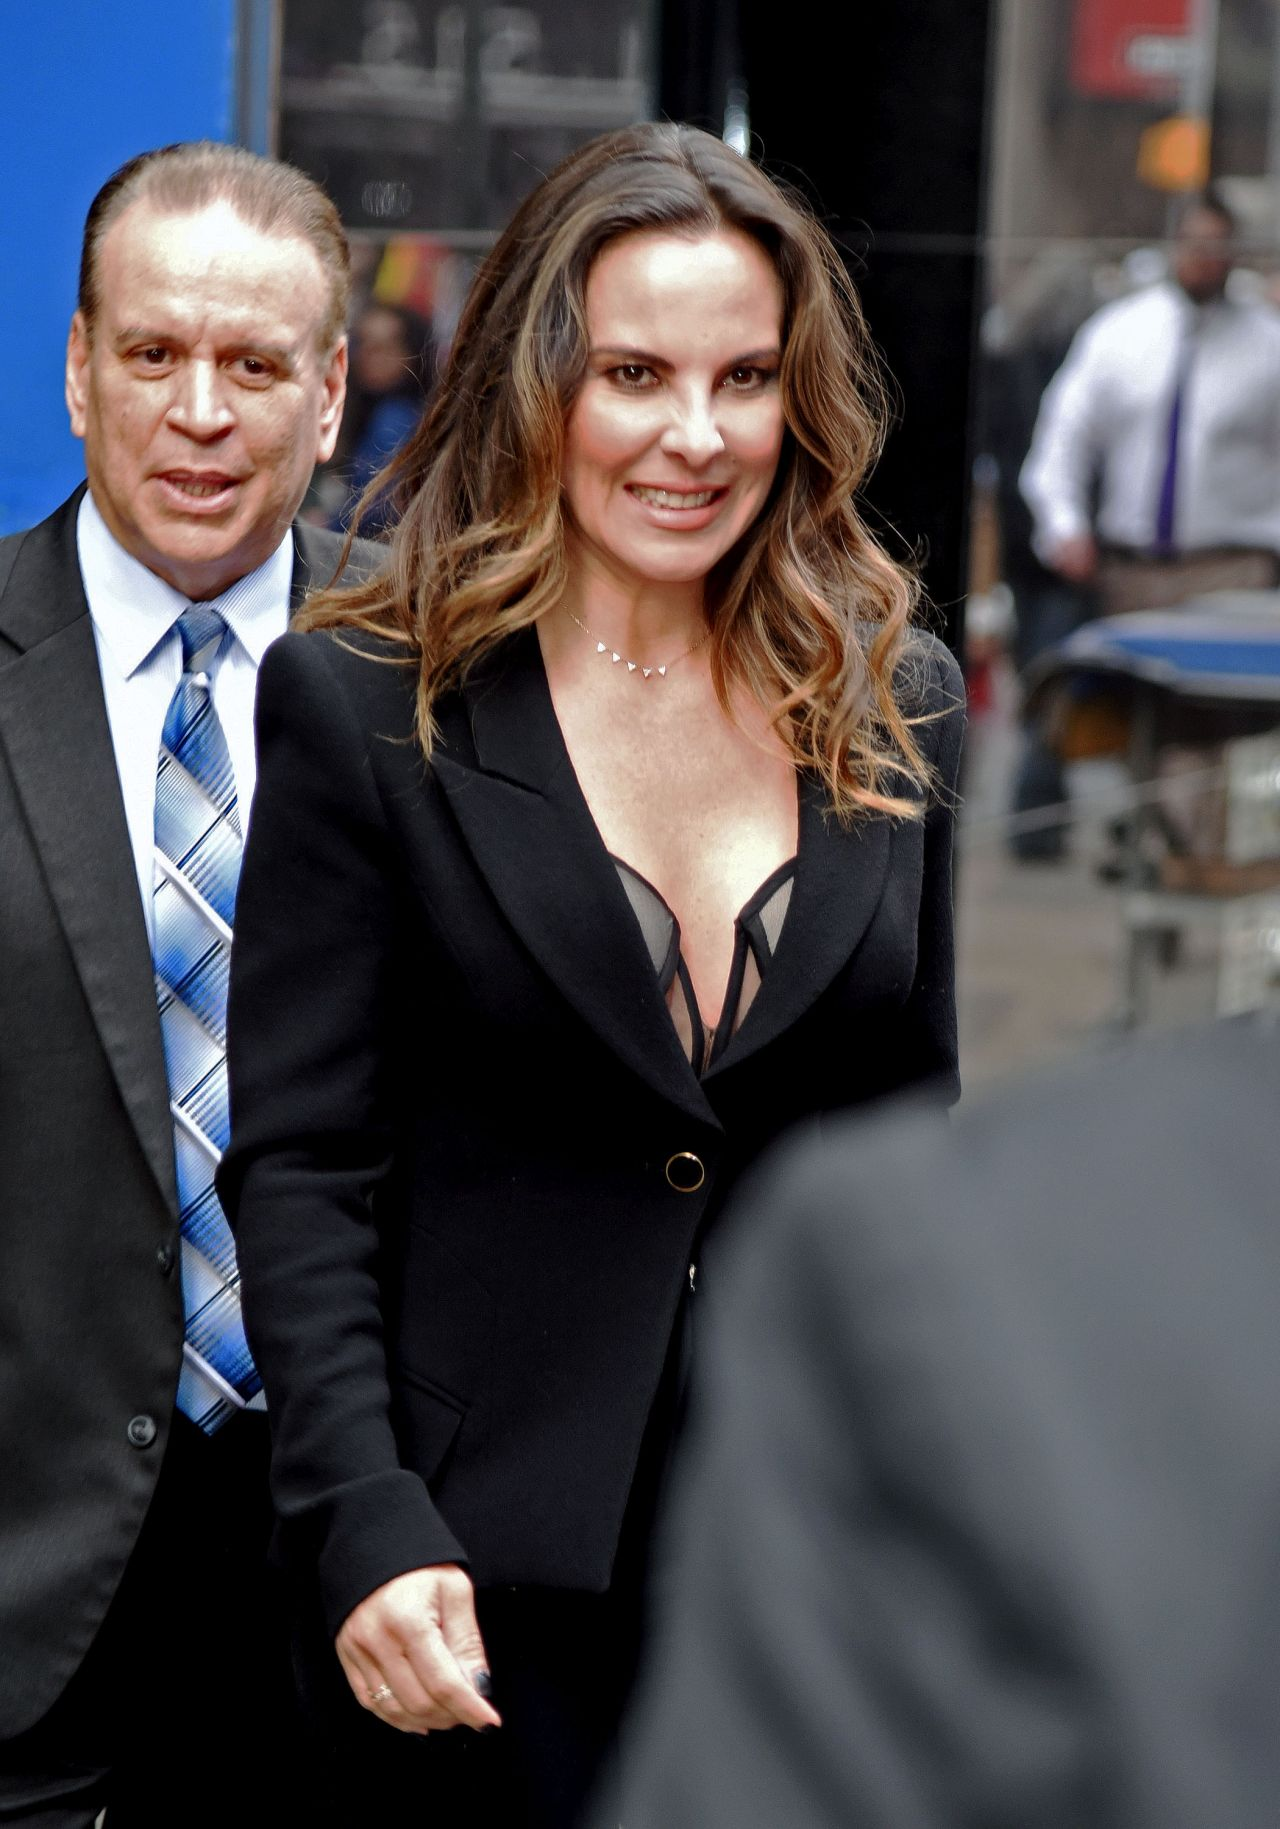 Kate del castillo arriving to appear on good morning america in nyc